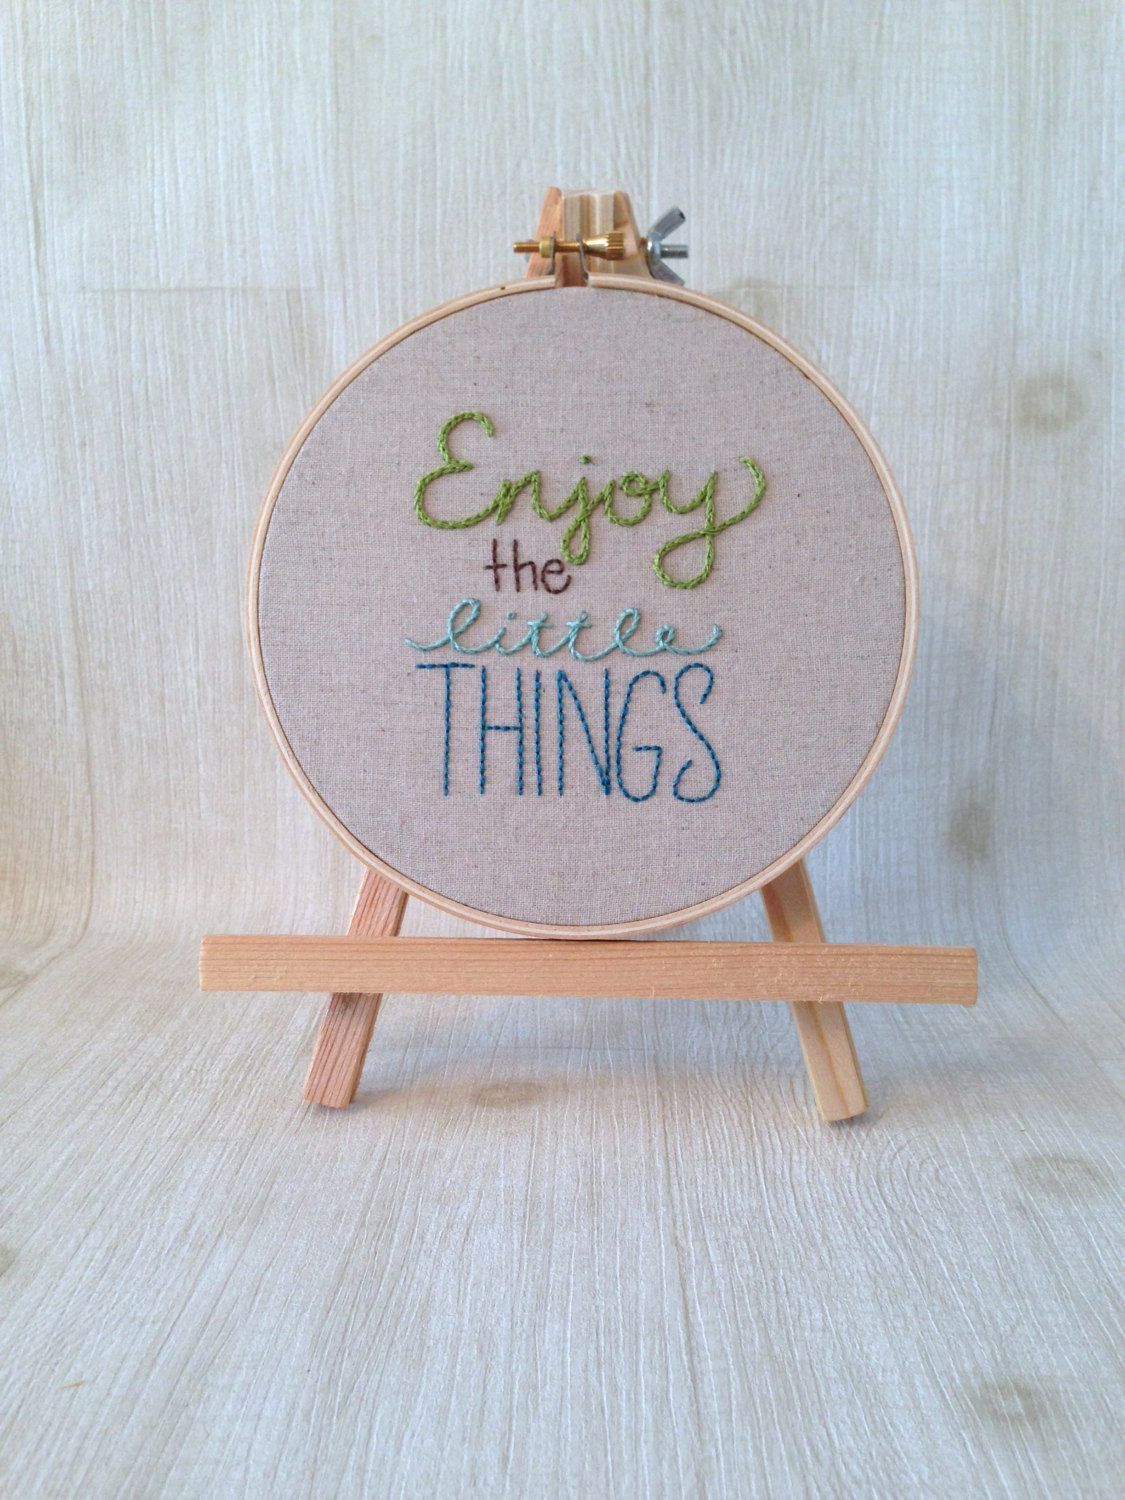 made to order . hand stitched embroidery hoop . enjoy the little things . inspirational quote . one of a kind . keepsake . hoop art by Embroiderwee on Etsy https://www.etsy.com/listing/195678552/made-to-order-hand-stitched-embroidery